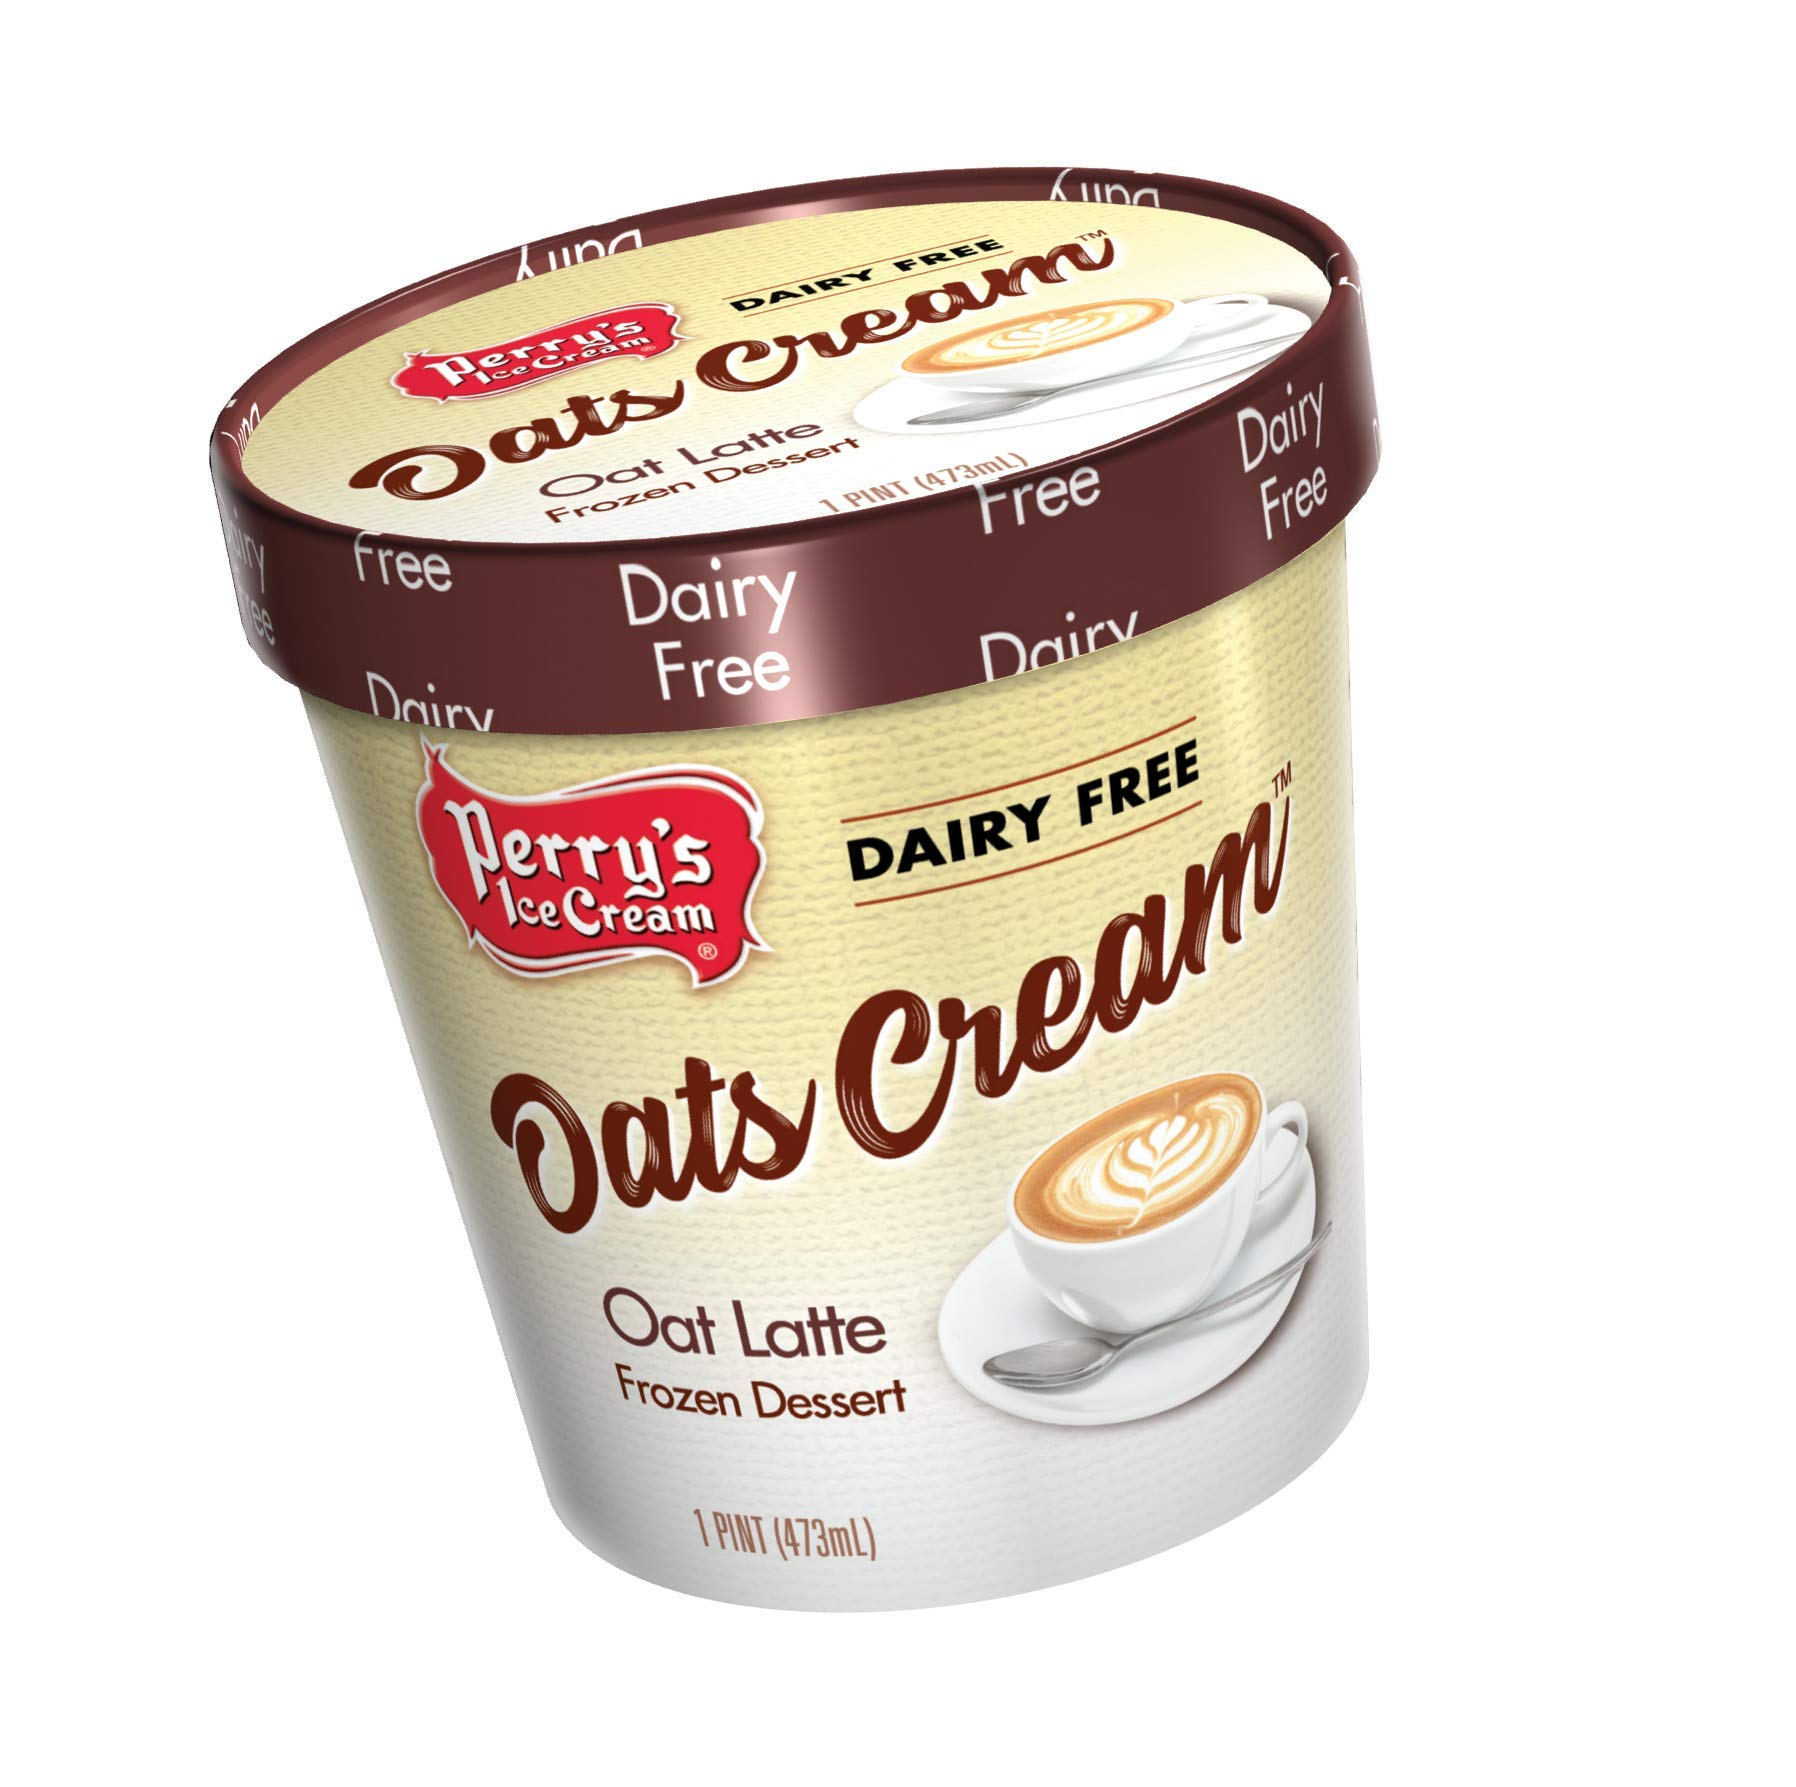 Perry's Ice Cream, Pint, Oats Cream, Oat Latte - Pack of 8